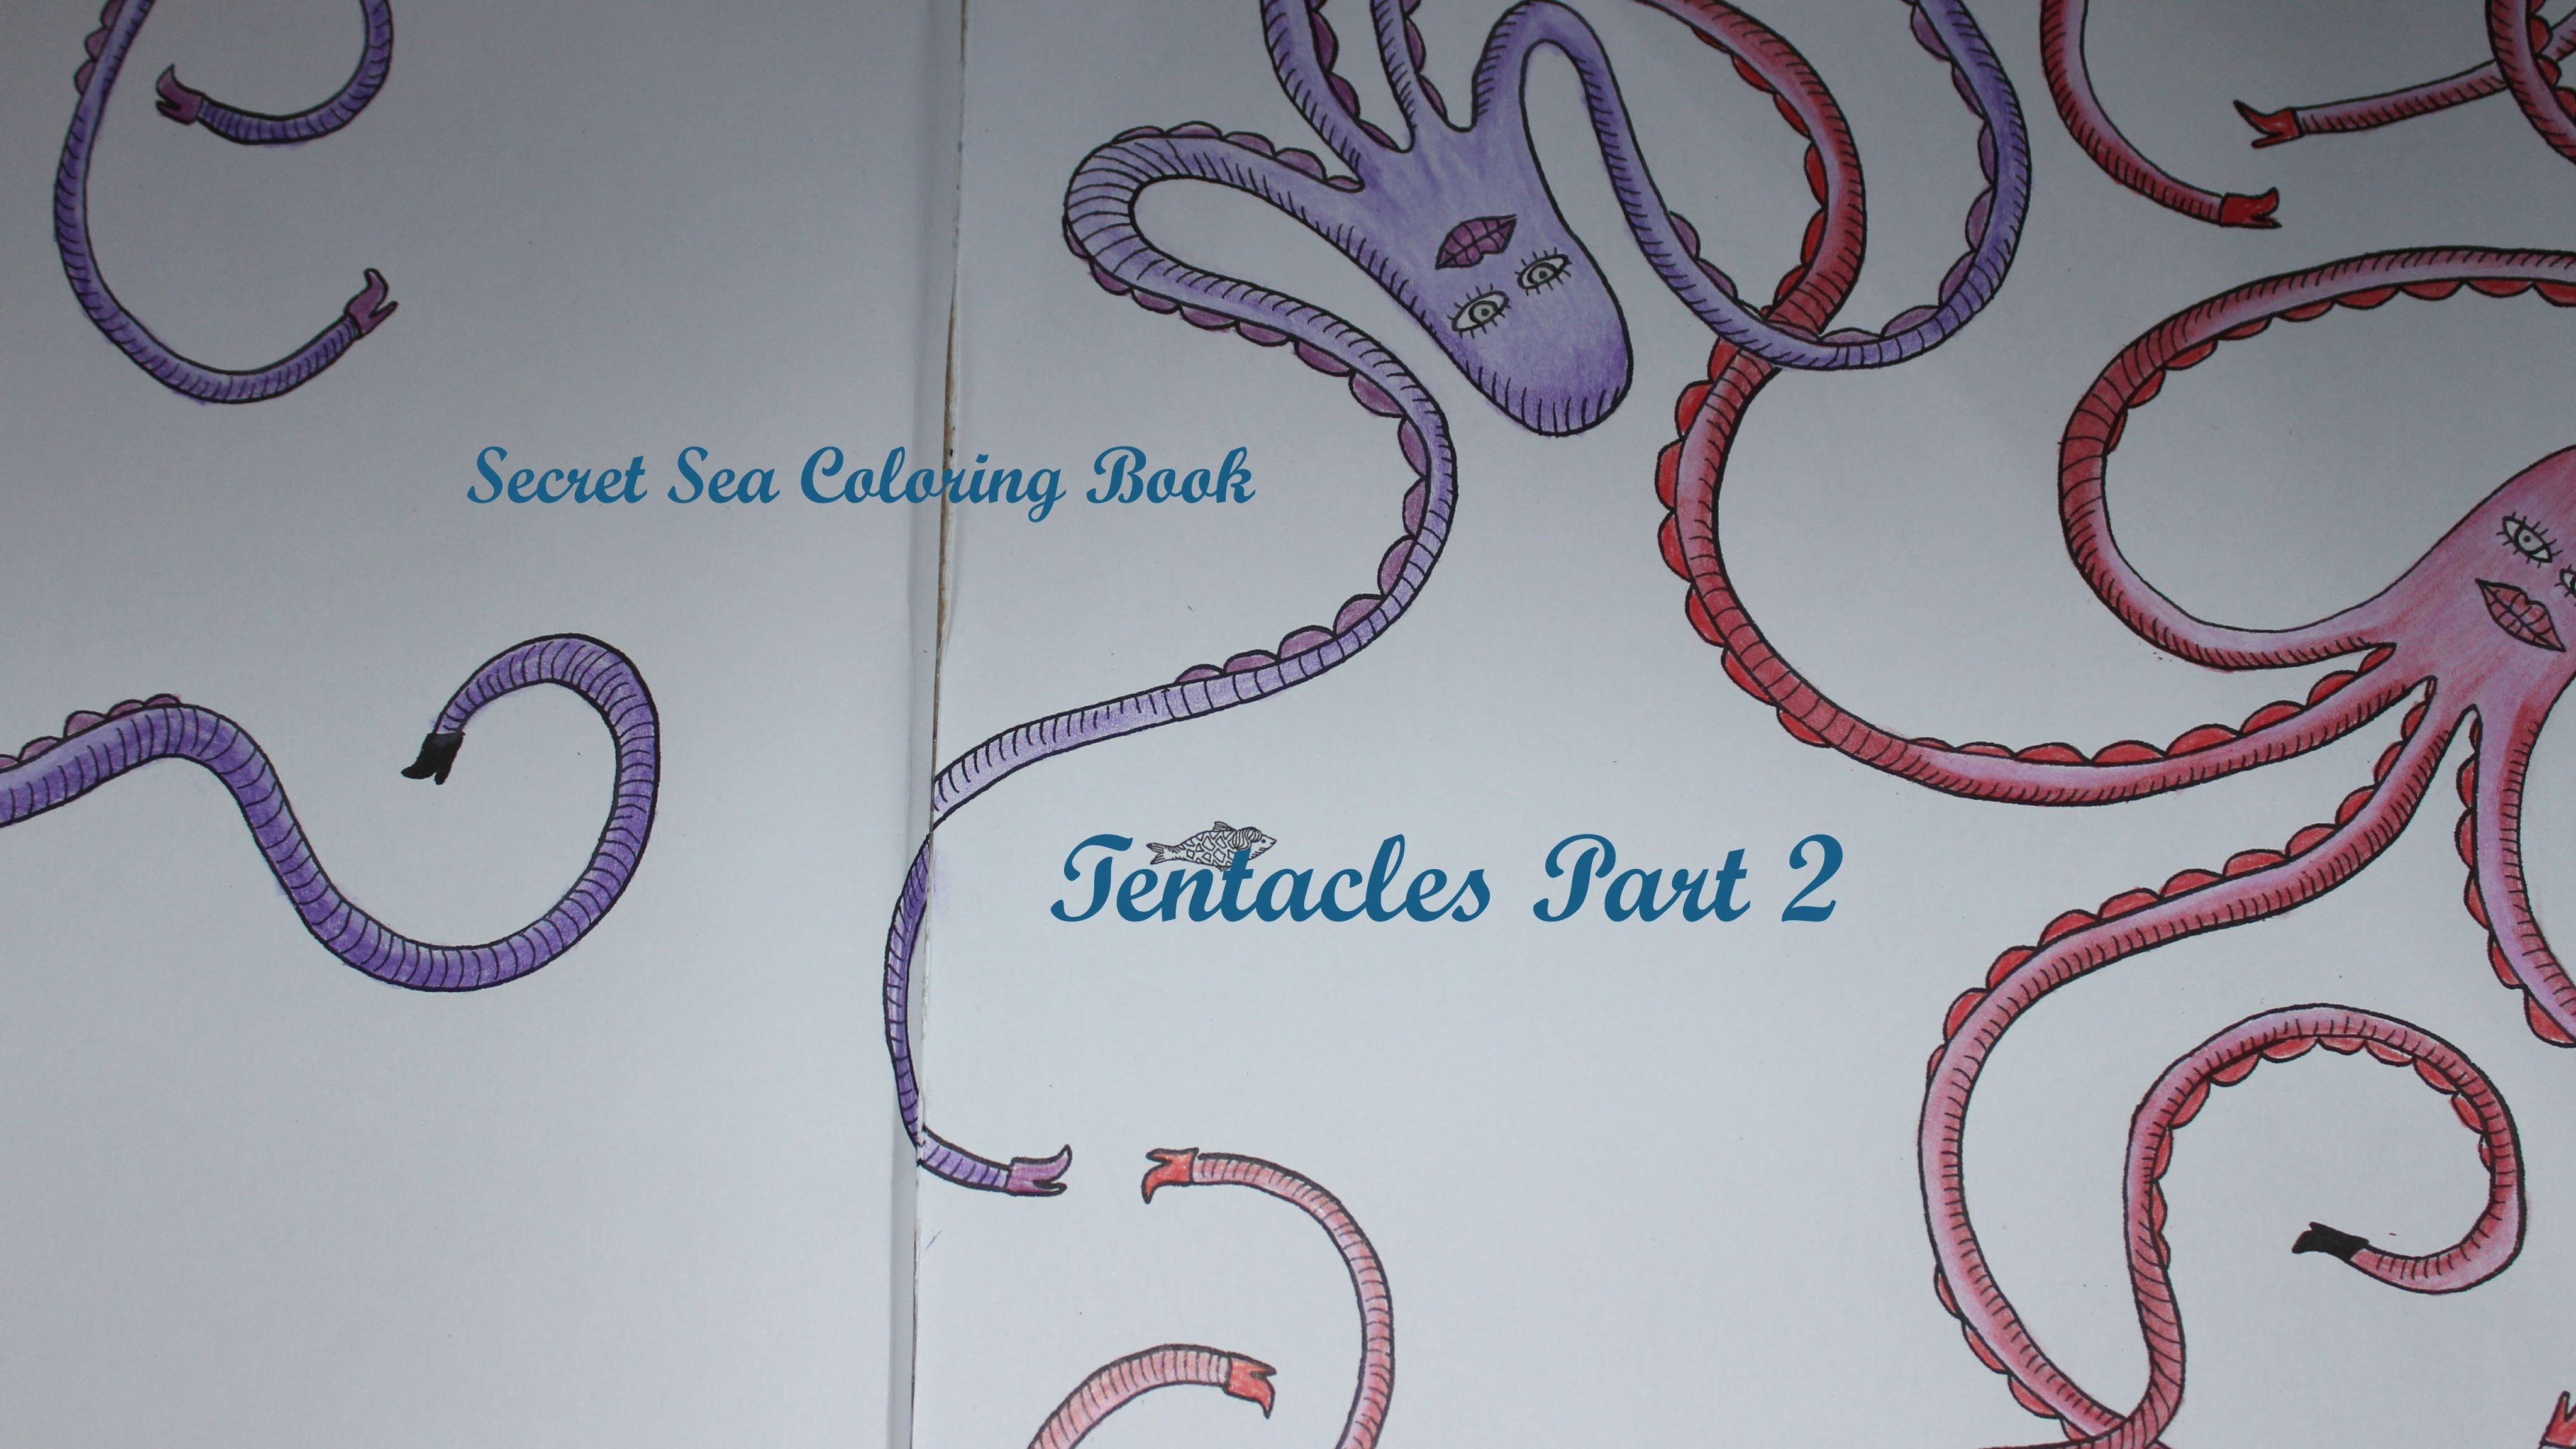 Under the sea coloring book for adults - Secret Sea Coloring Book Wonders Under The Sea Tentacles Part 2